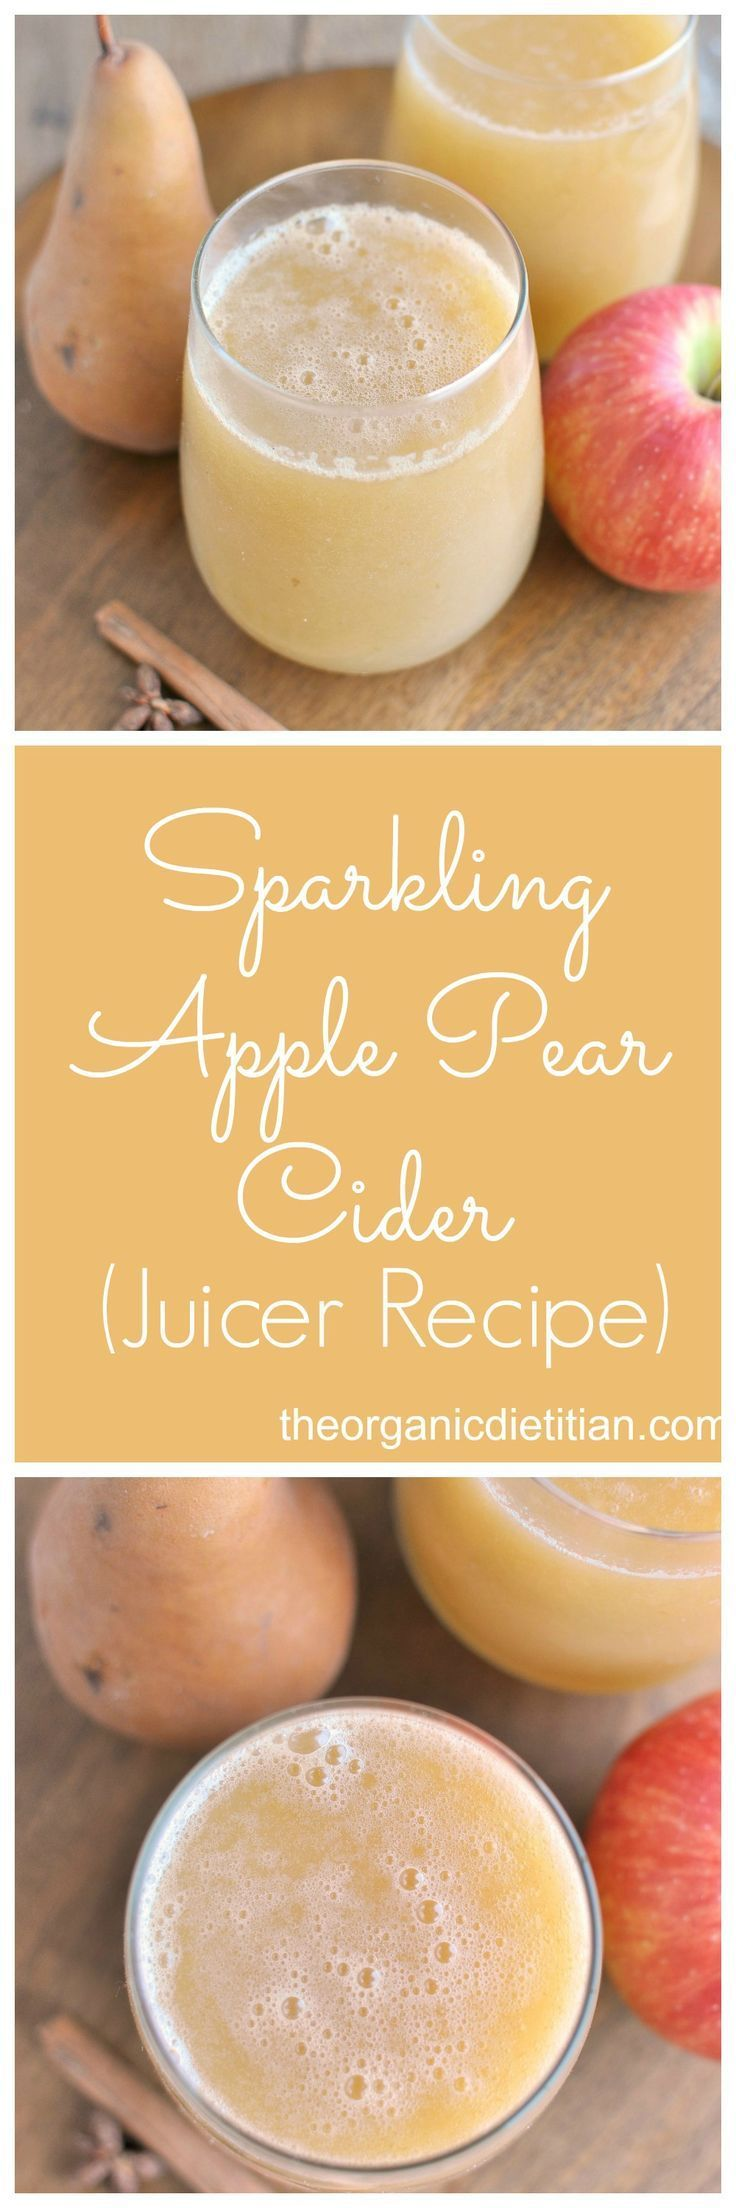 Sparkling Apple Pear Cider